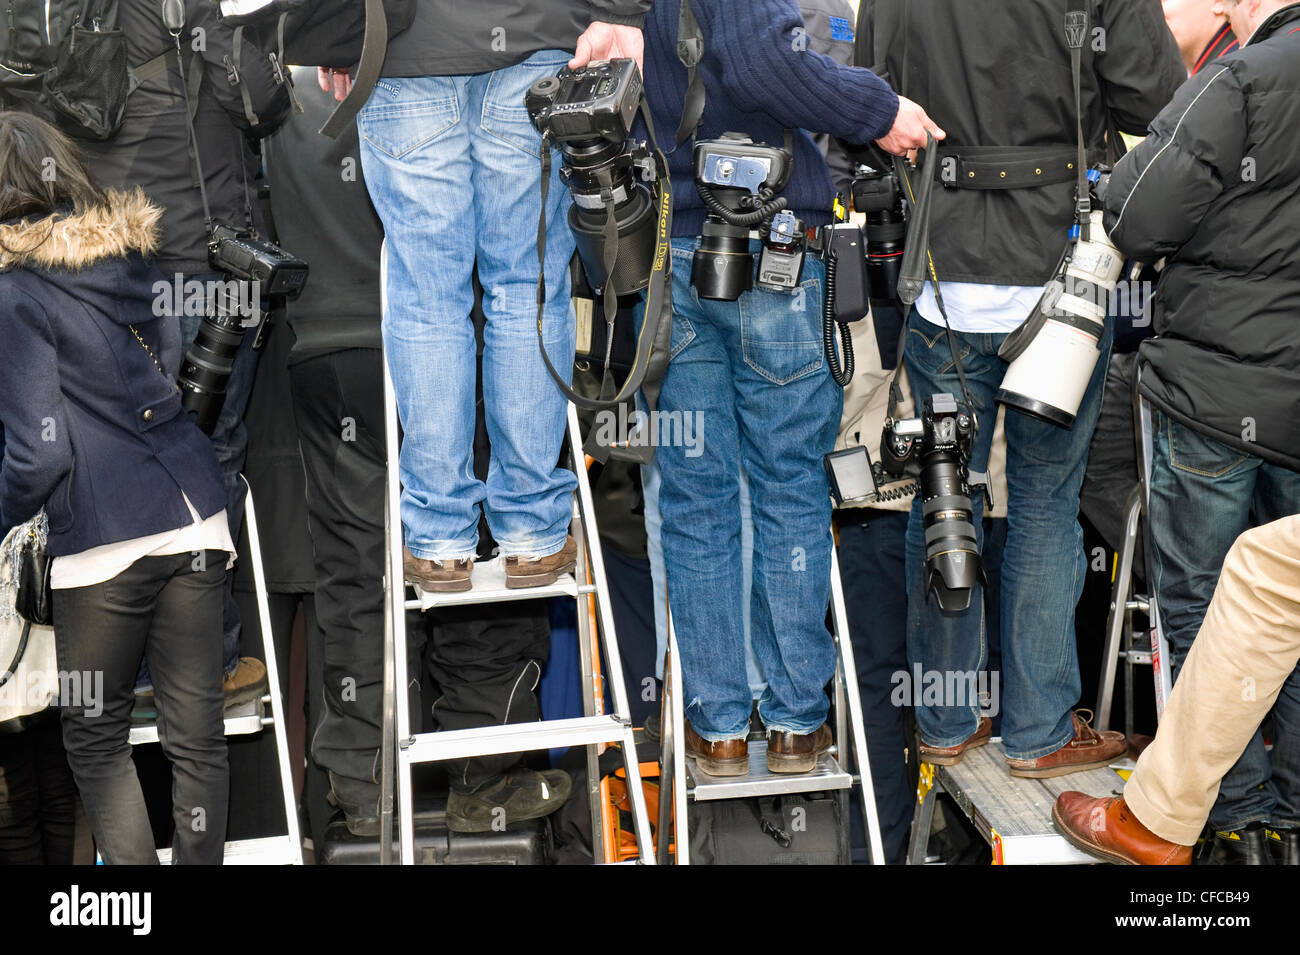 Professional photographers gain a height advantage over the crowd by using step-ladders. - Stock Image